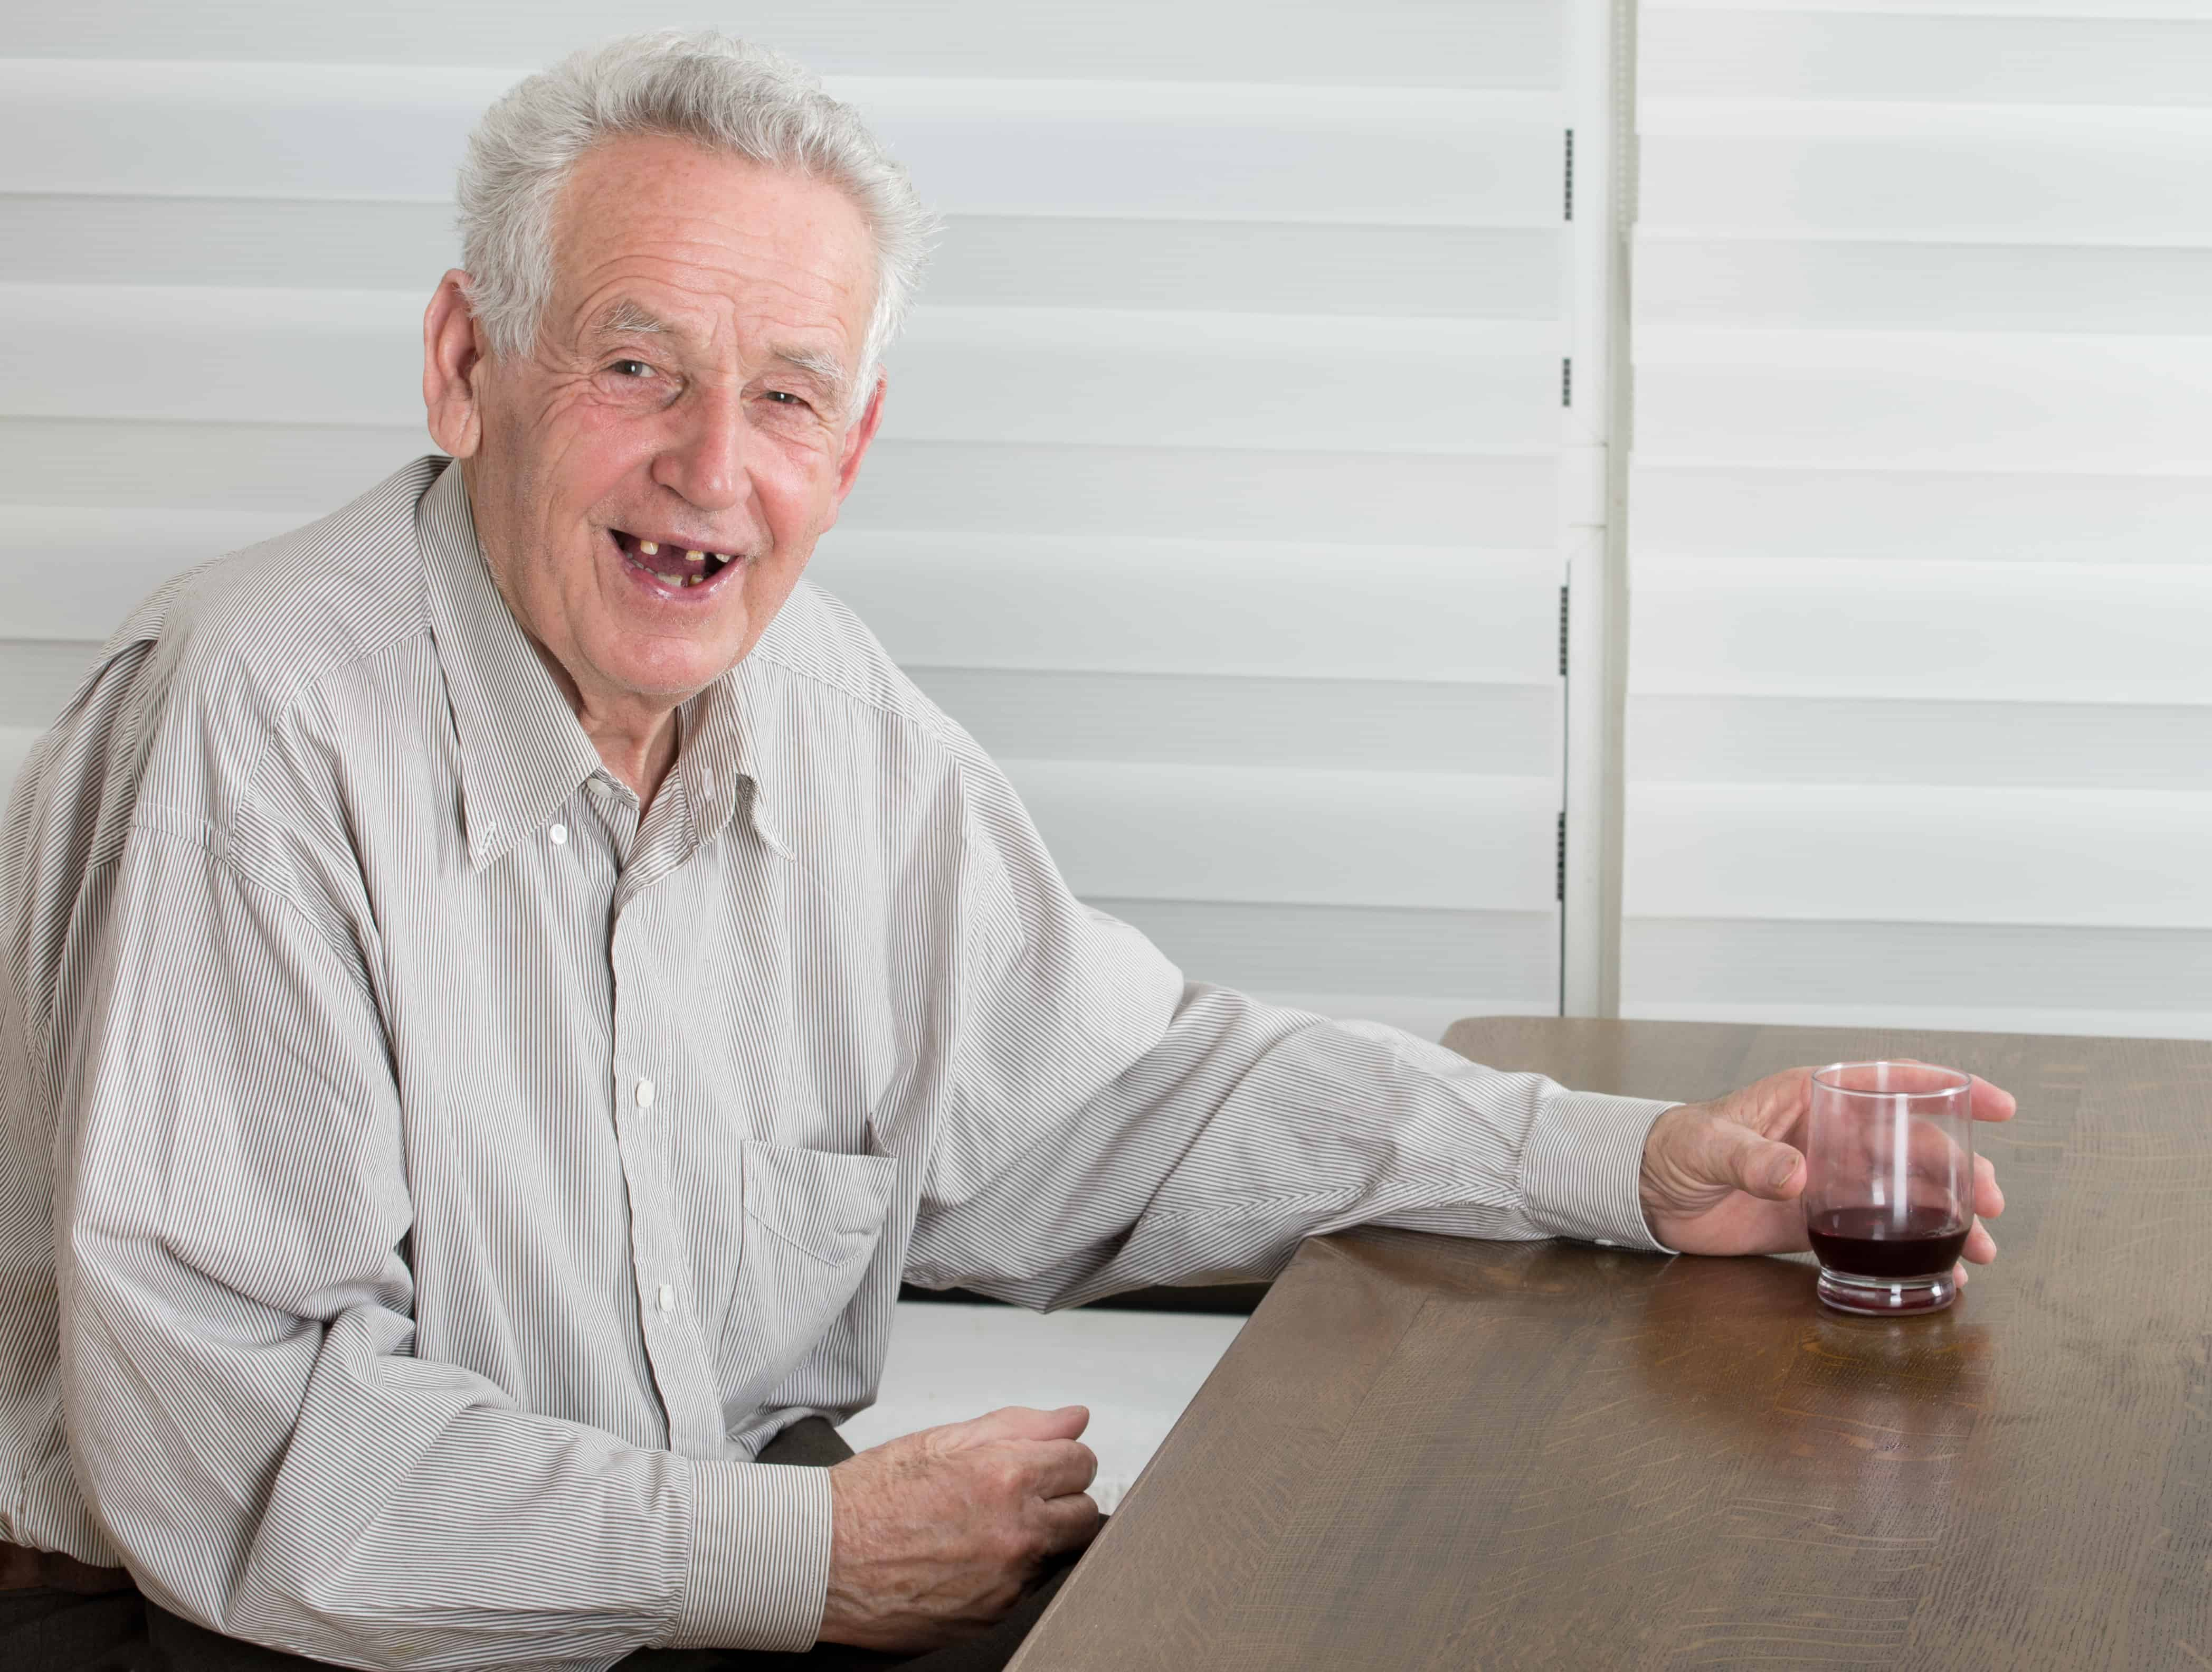 Old man holding glass with alcohol dring and laughing laudly